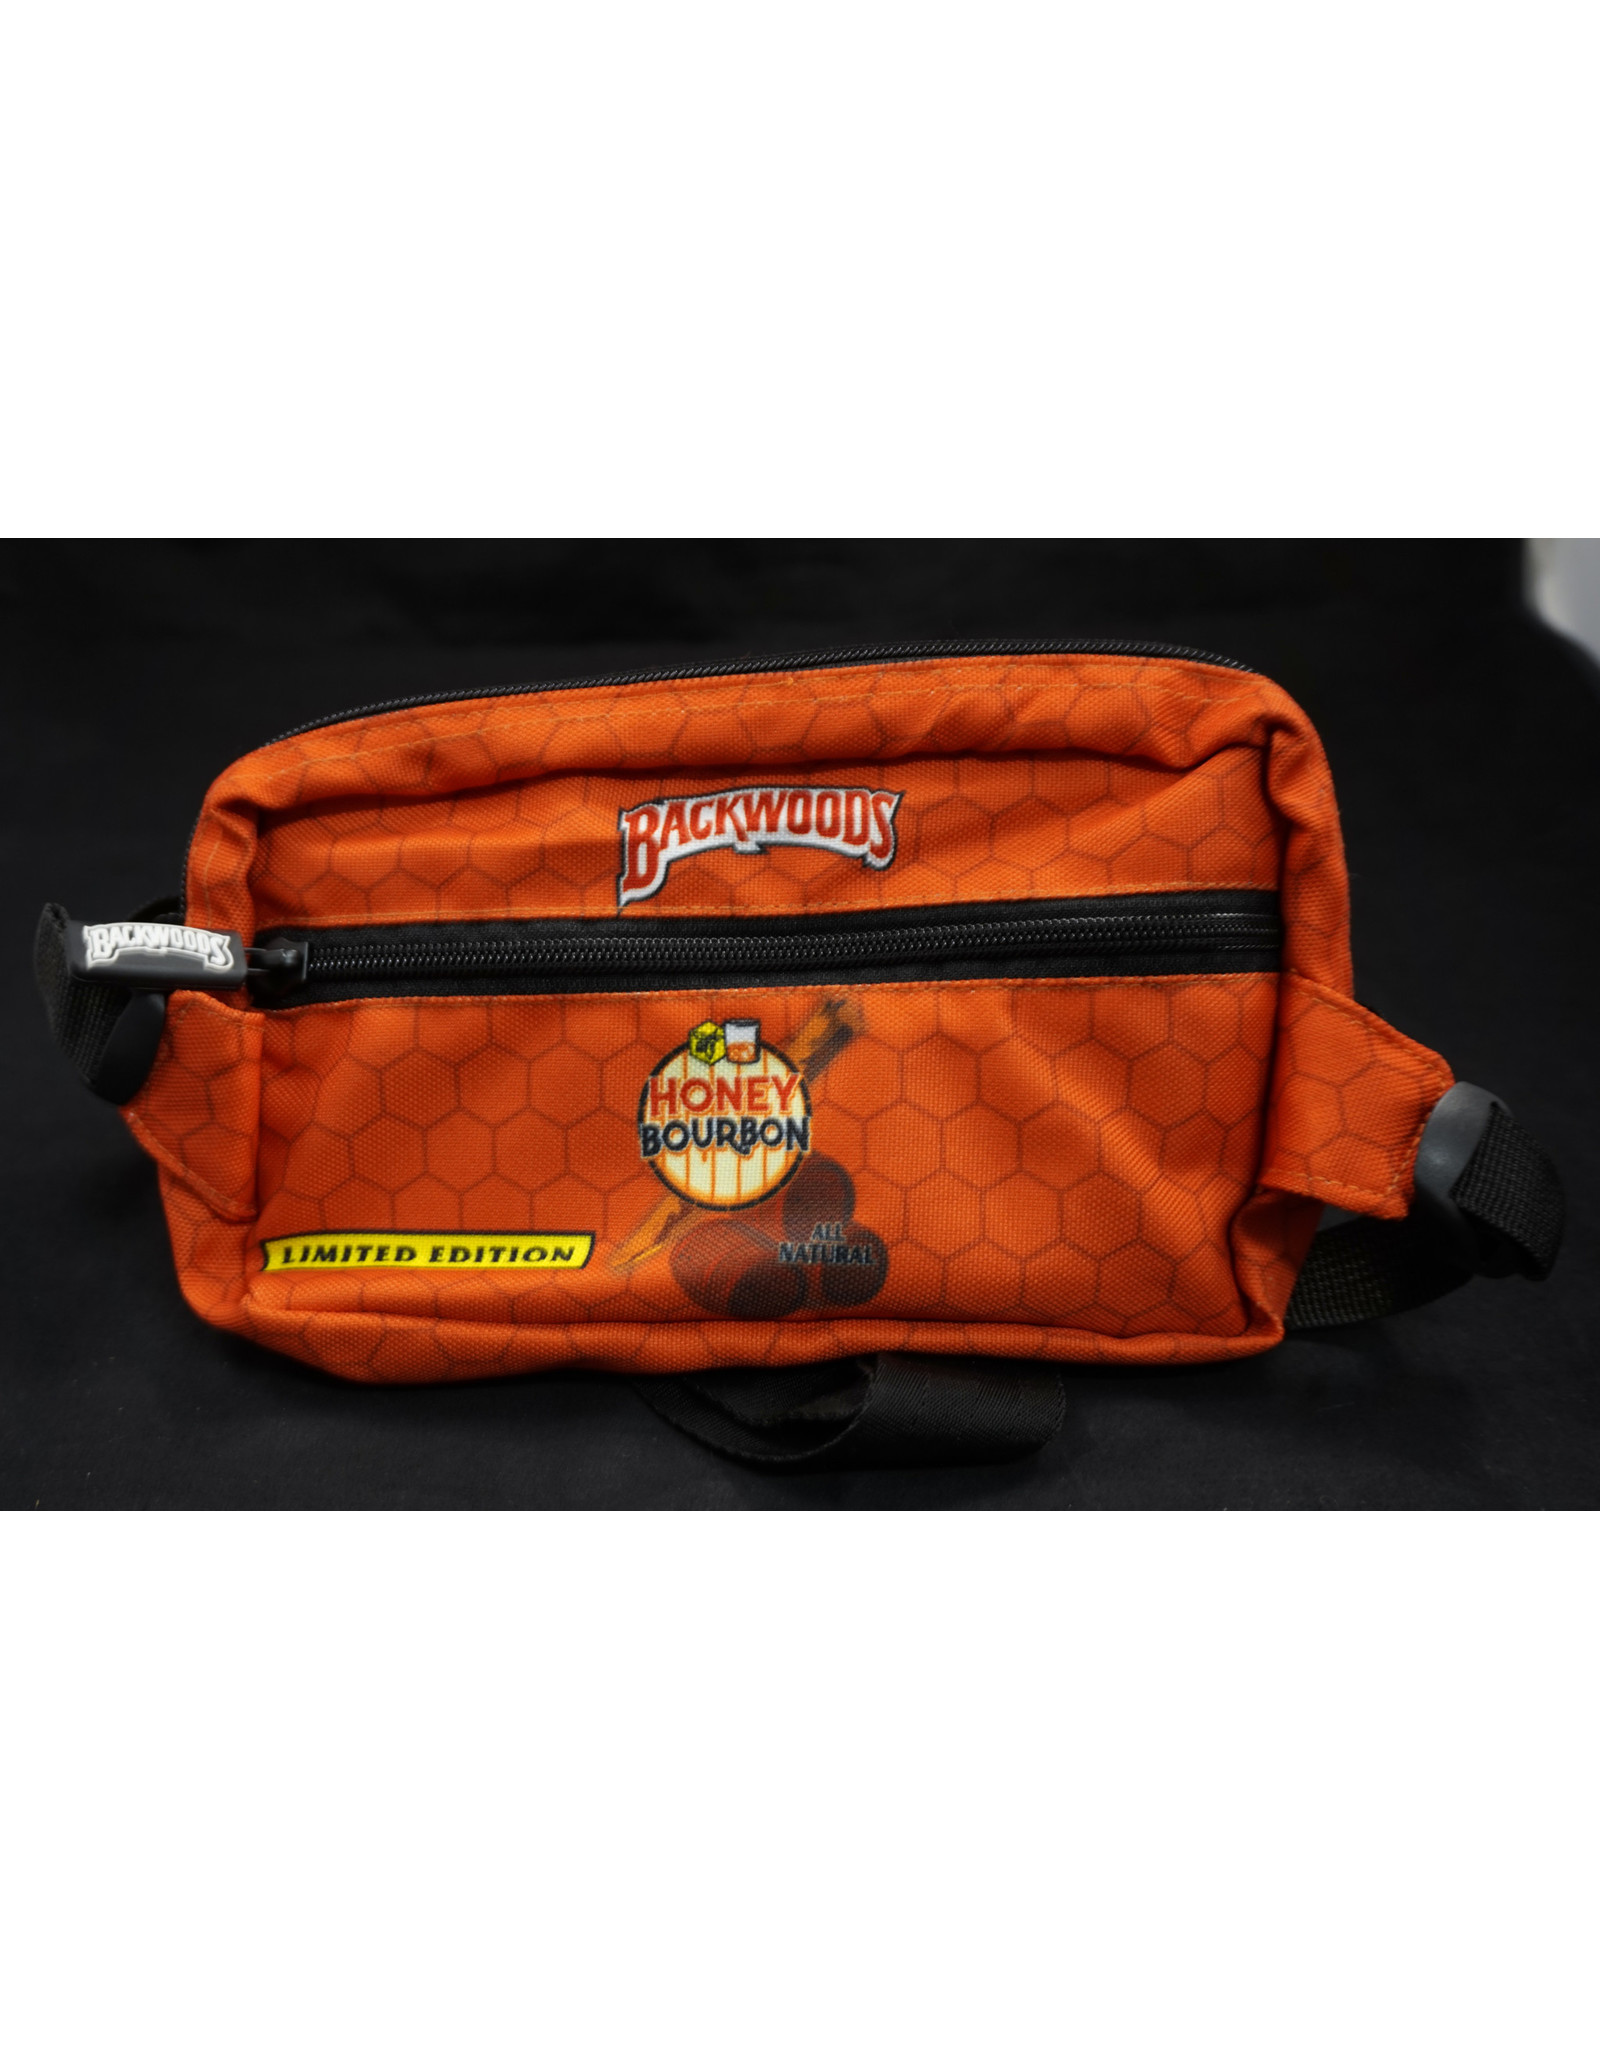 Backwoods Fanny Pack - Honey Bourbon